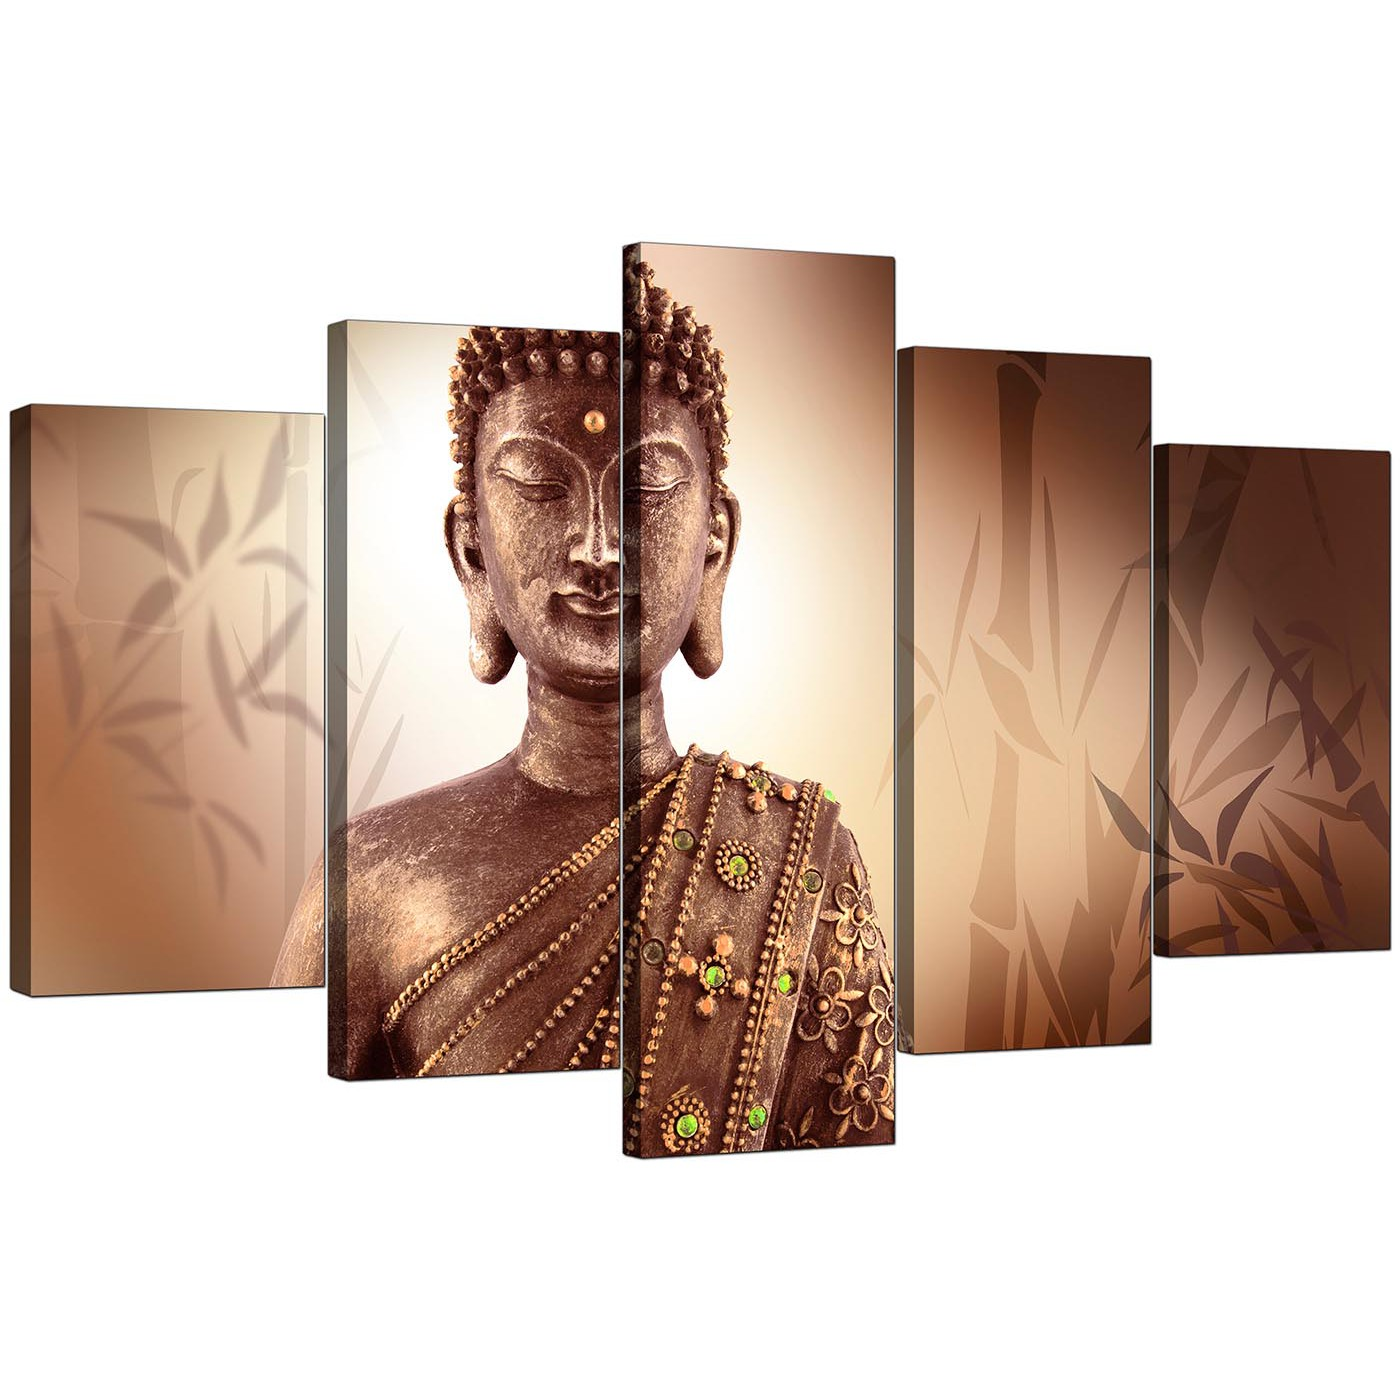 display gallery item 4 5 piece set of modern brown canvas wall art display gallery item 5